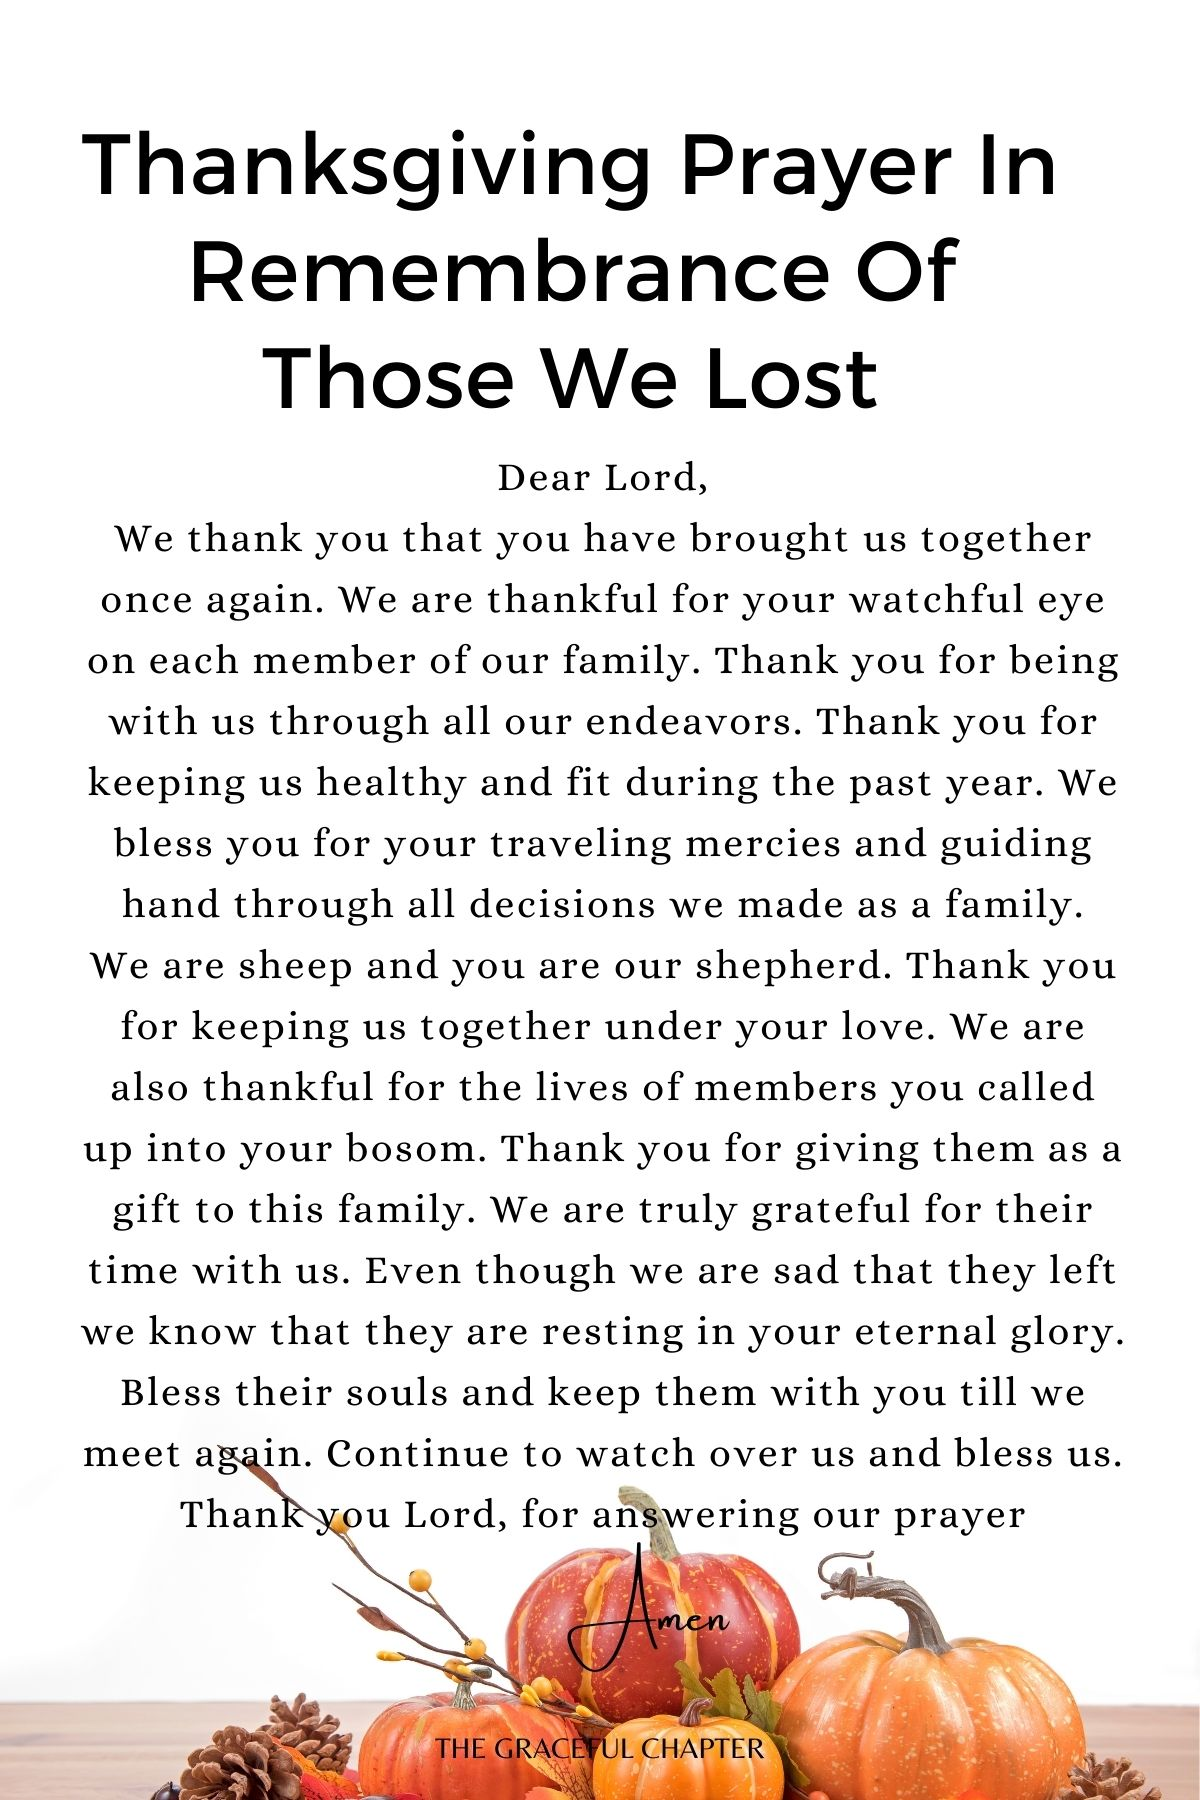 Thanksgiving prayer in remembrance of those we lost